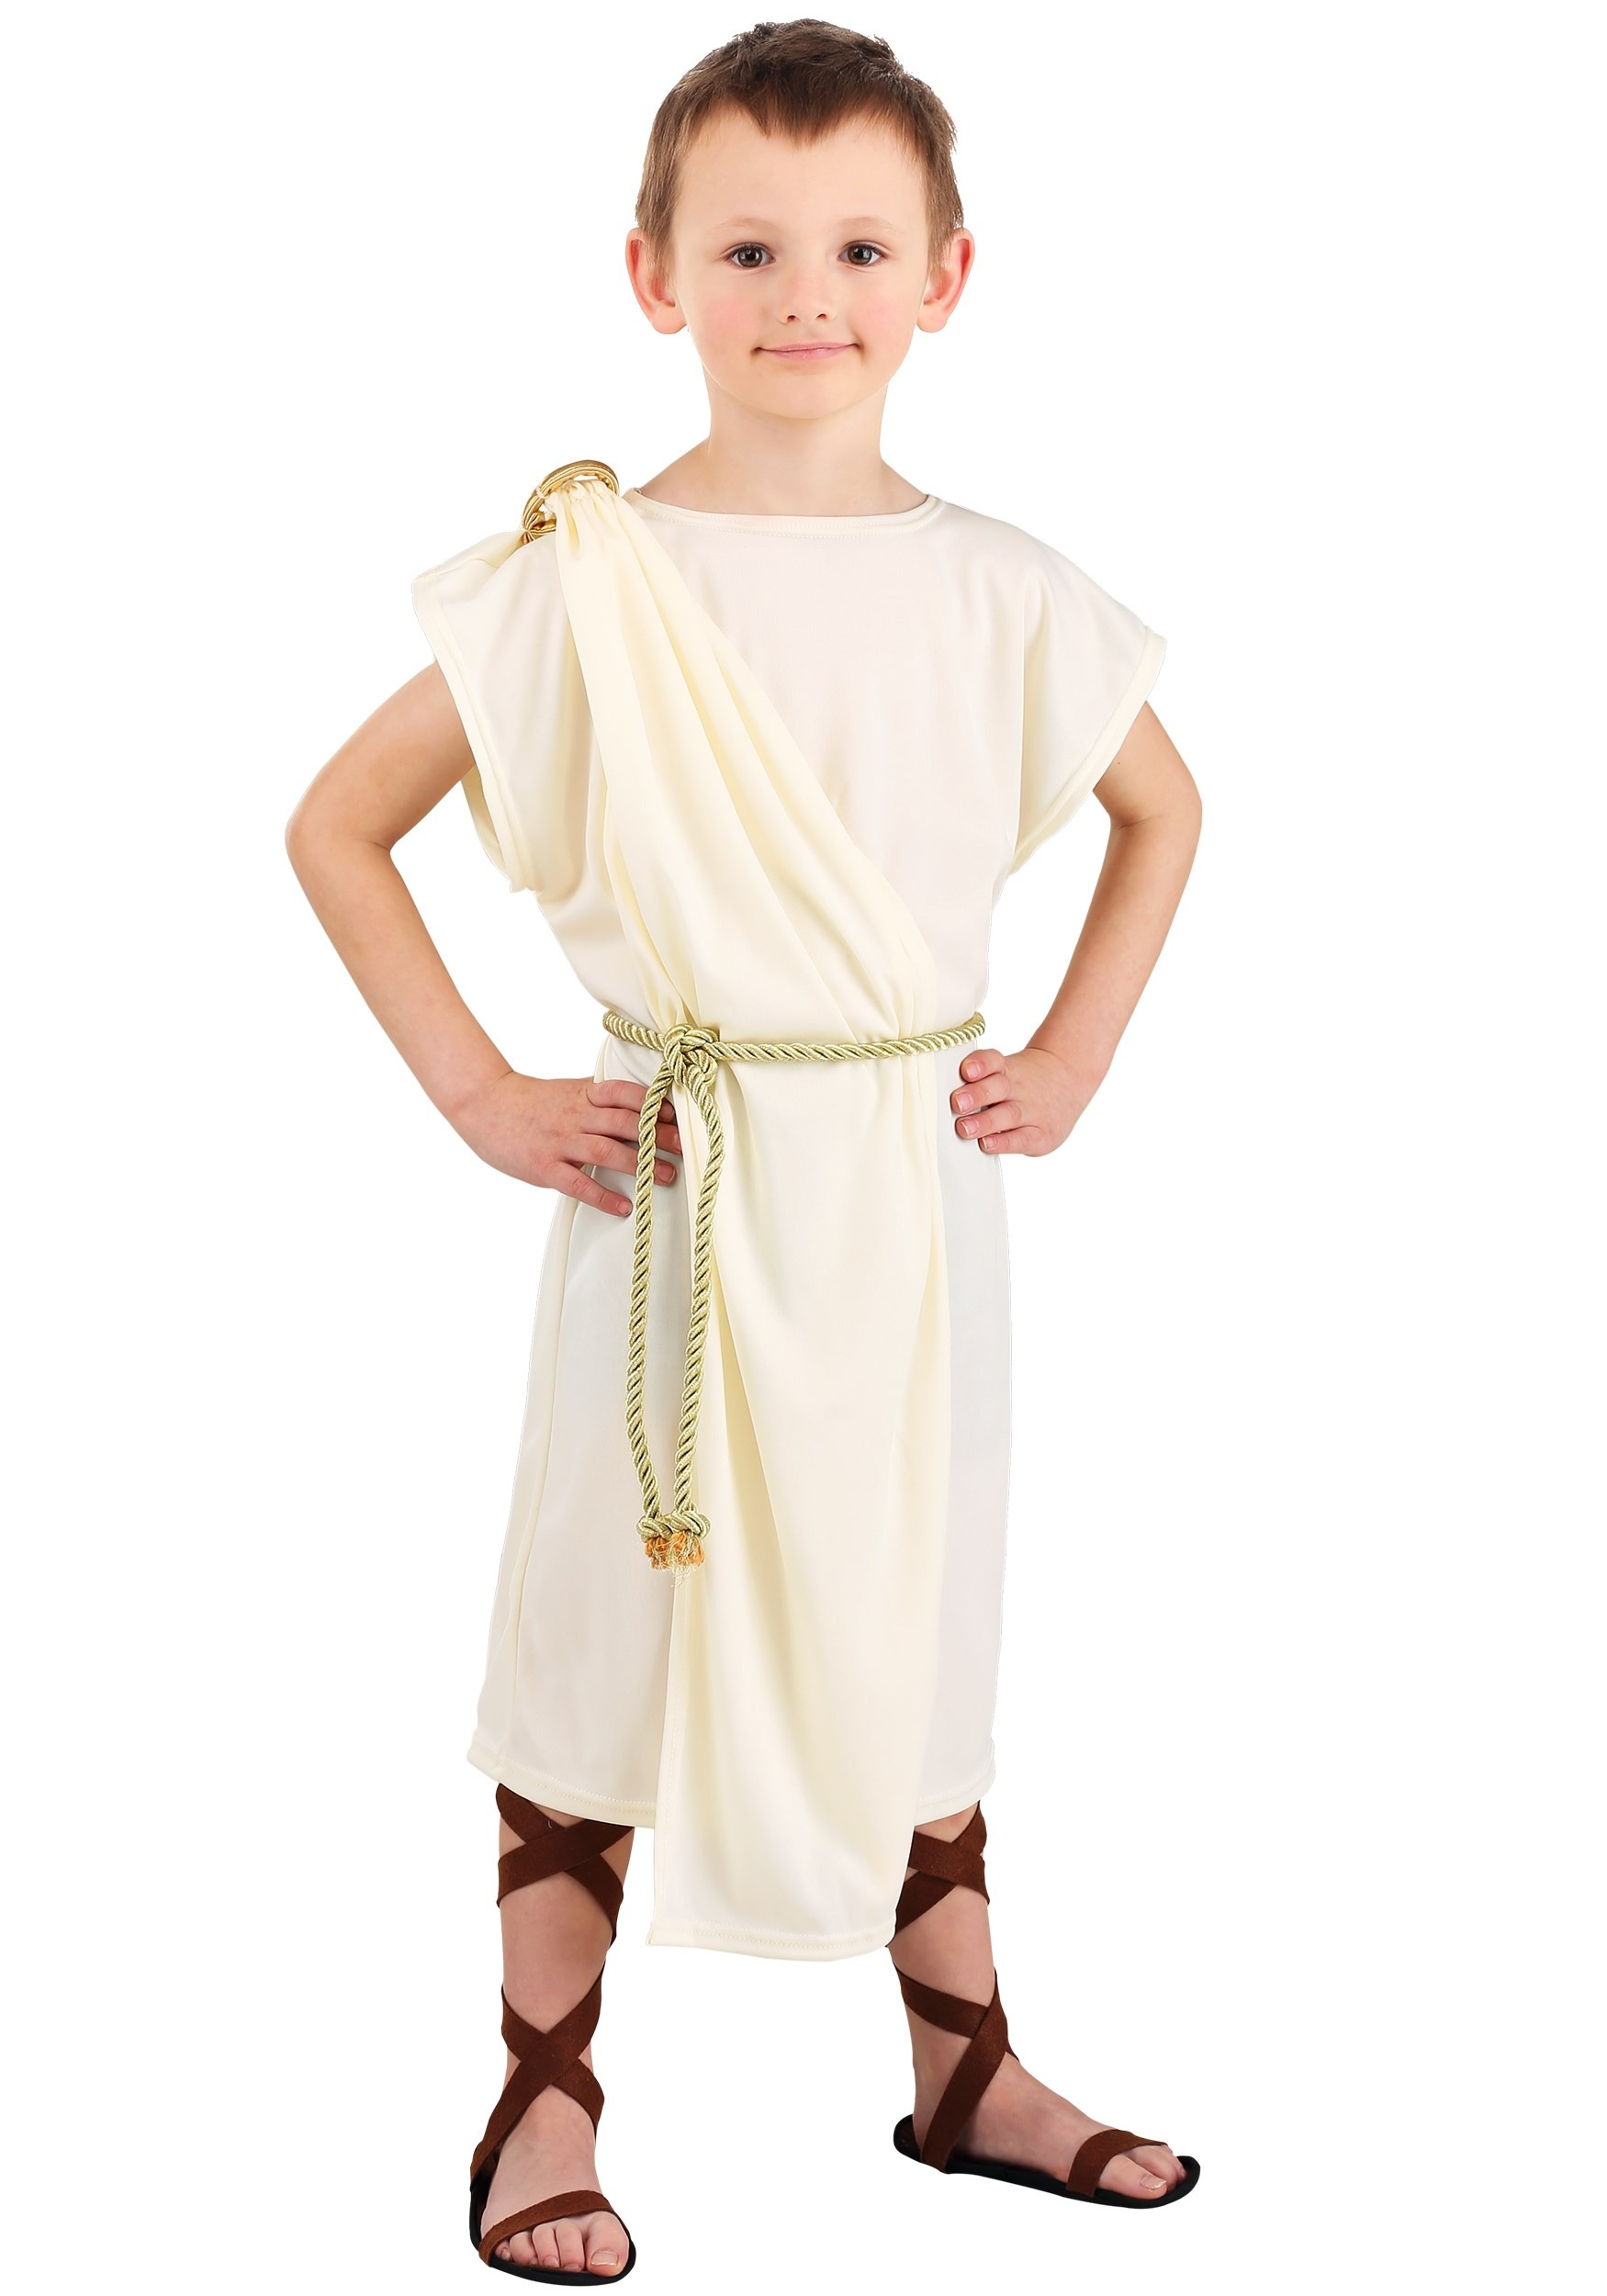 Toga Costume for Toddlers